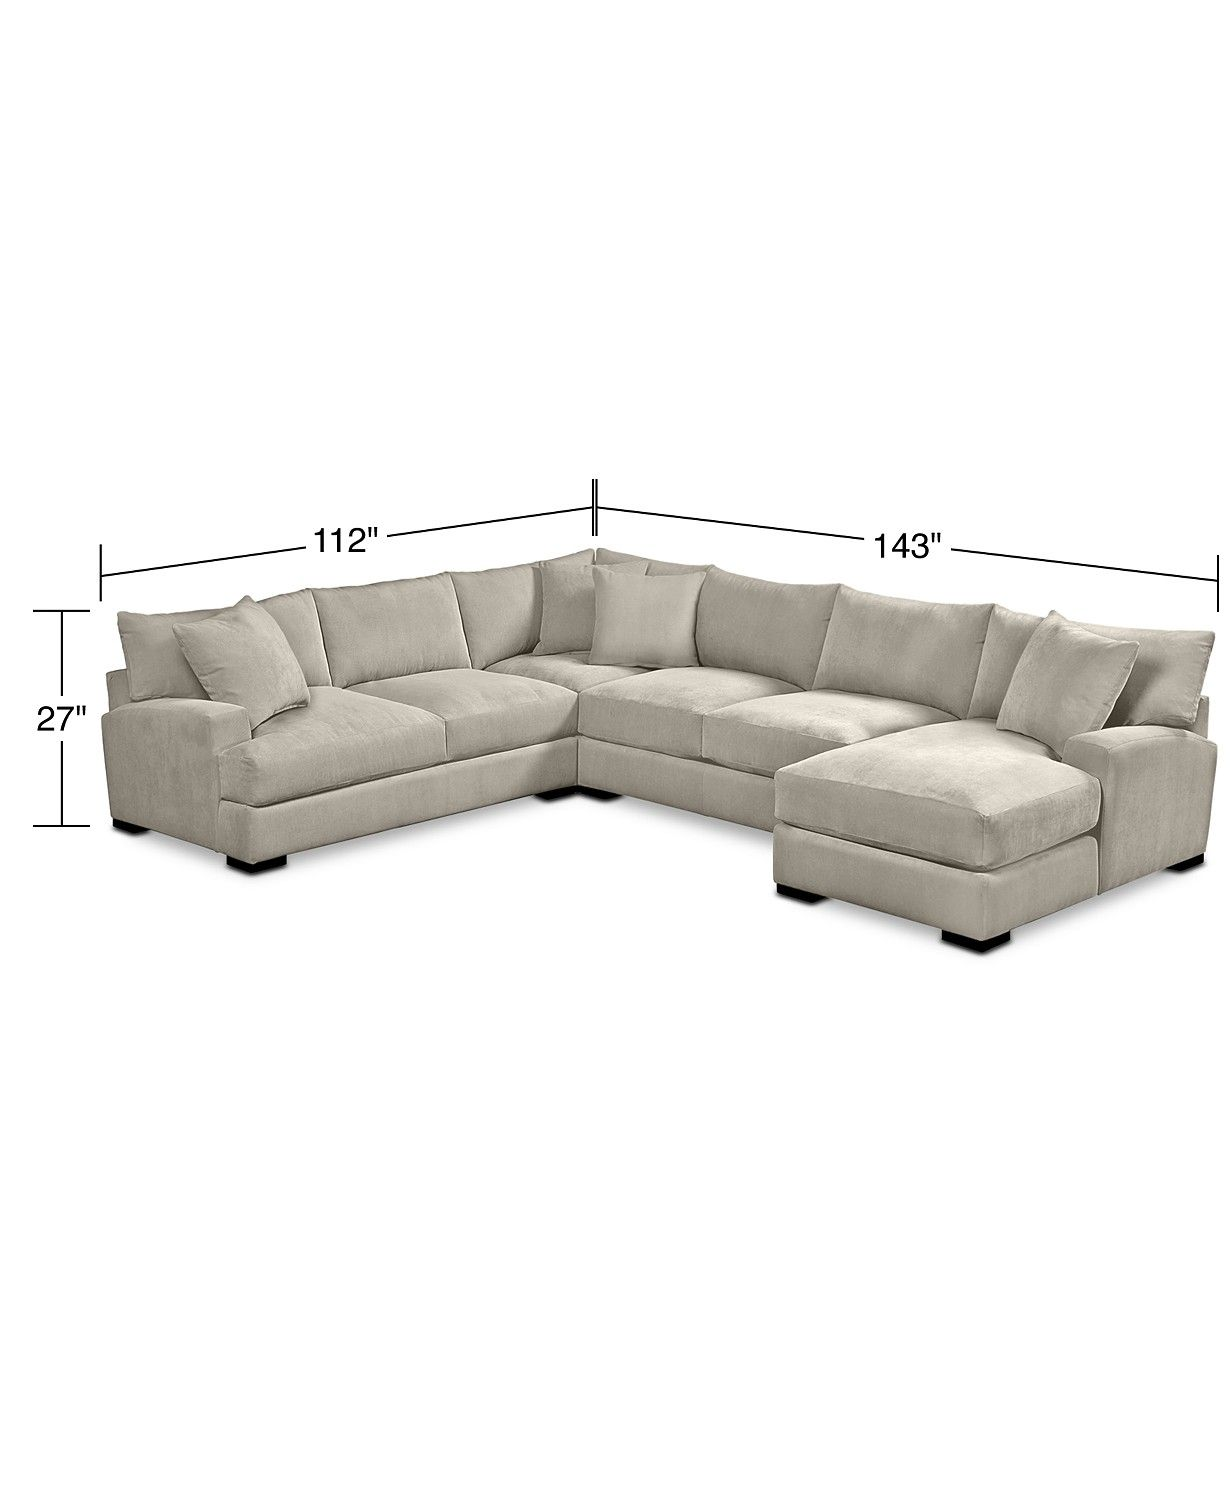 Furniture Rhyder 4 Pc 112 Fabric Sectional Sofa With Chaise